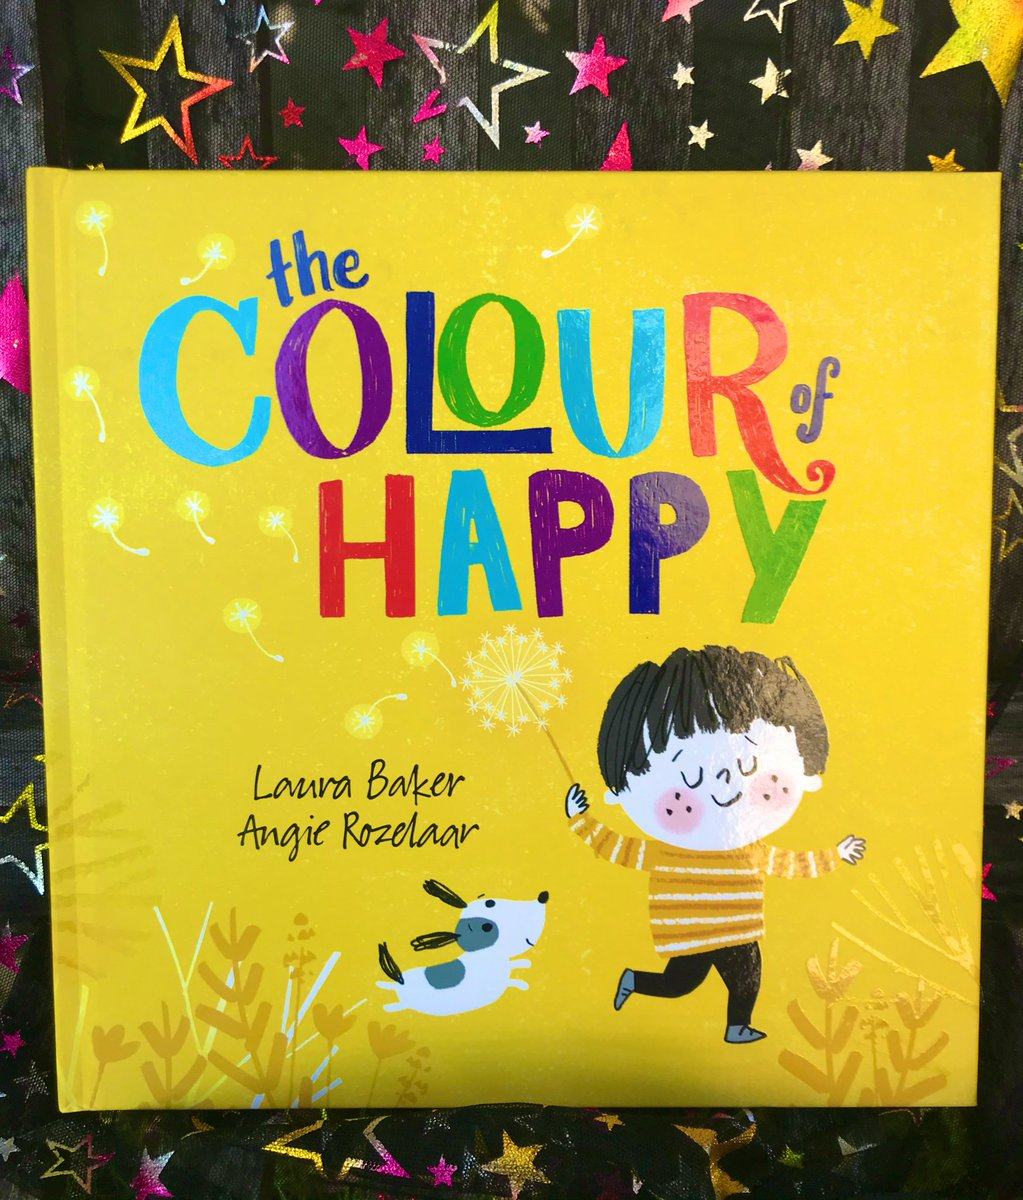 🌟GIVEAWAY FOR TEACHERS/SCHOOLS🌟 RT + follow for a chance to win a signed copy of The Colour of Happy. As many go back to school, so many emotions can be felt. This book looks at feelings in an accessible way and ties in to wellbeing. Closes 18/9 at 8pm. UK only. Good luck!